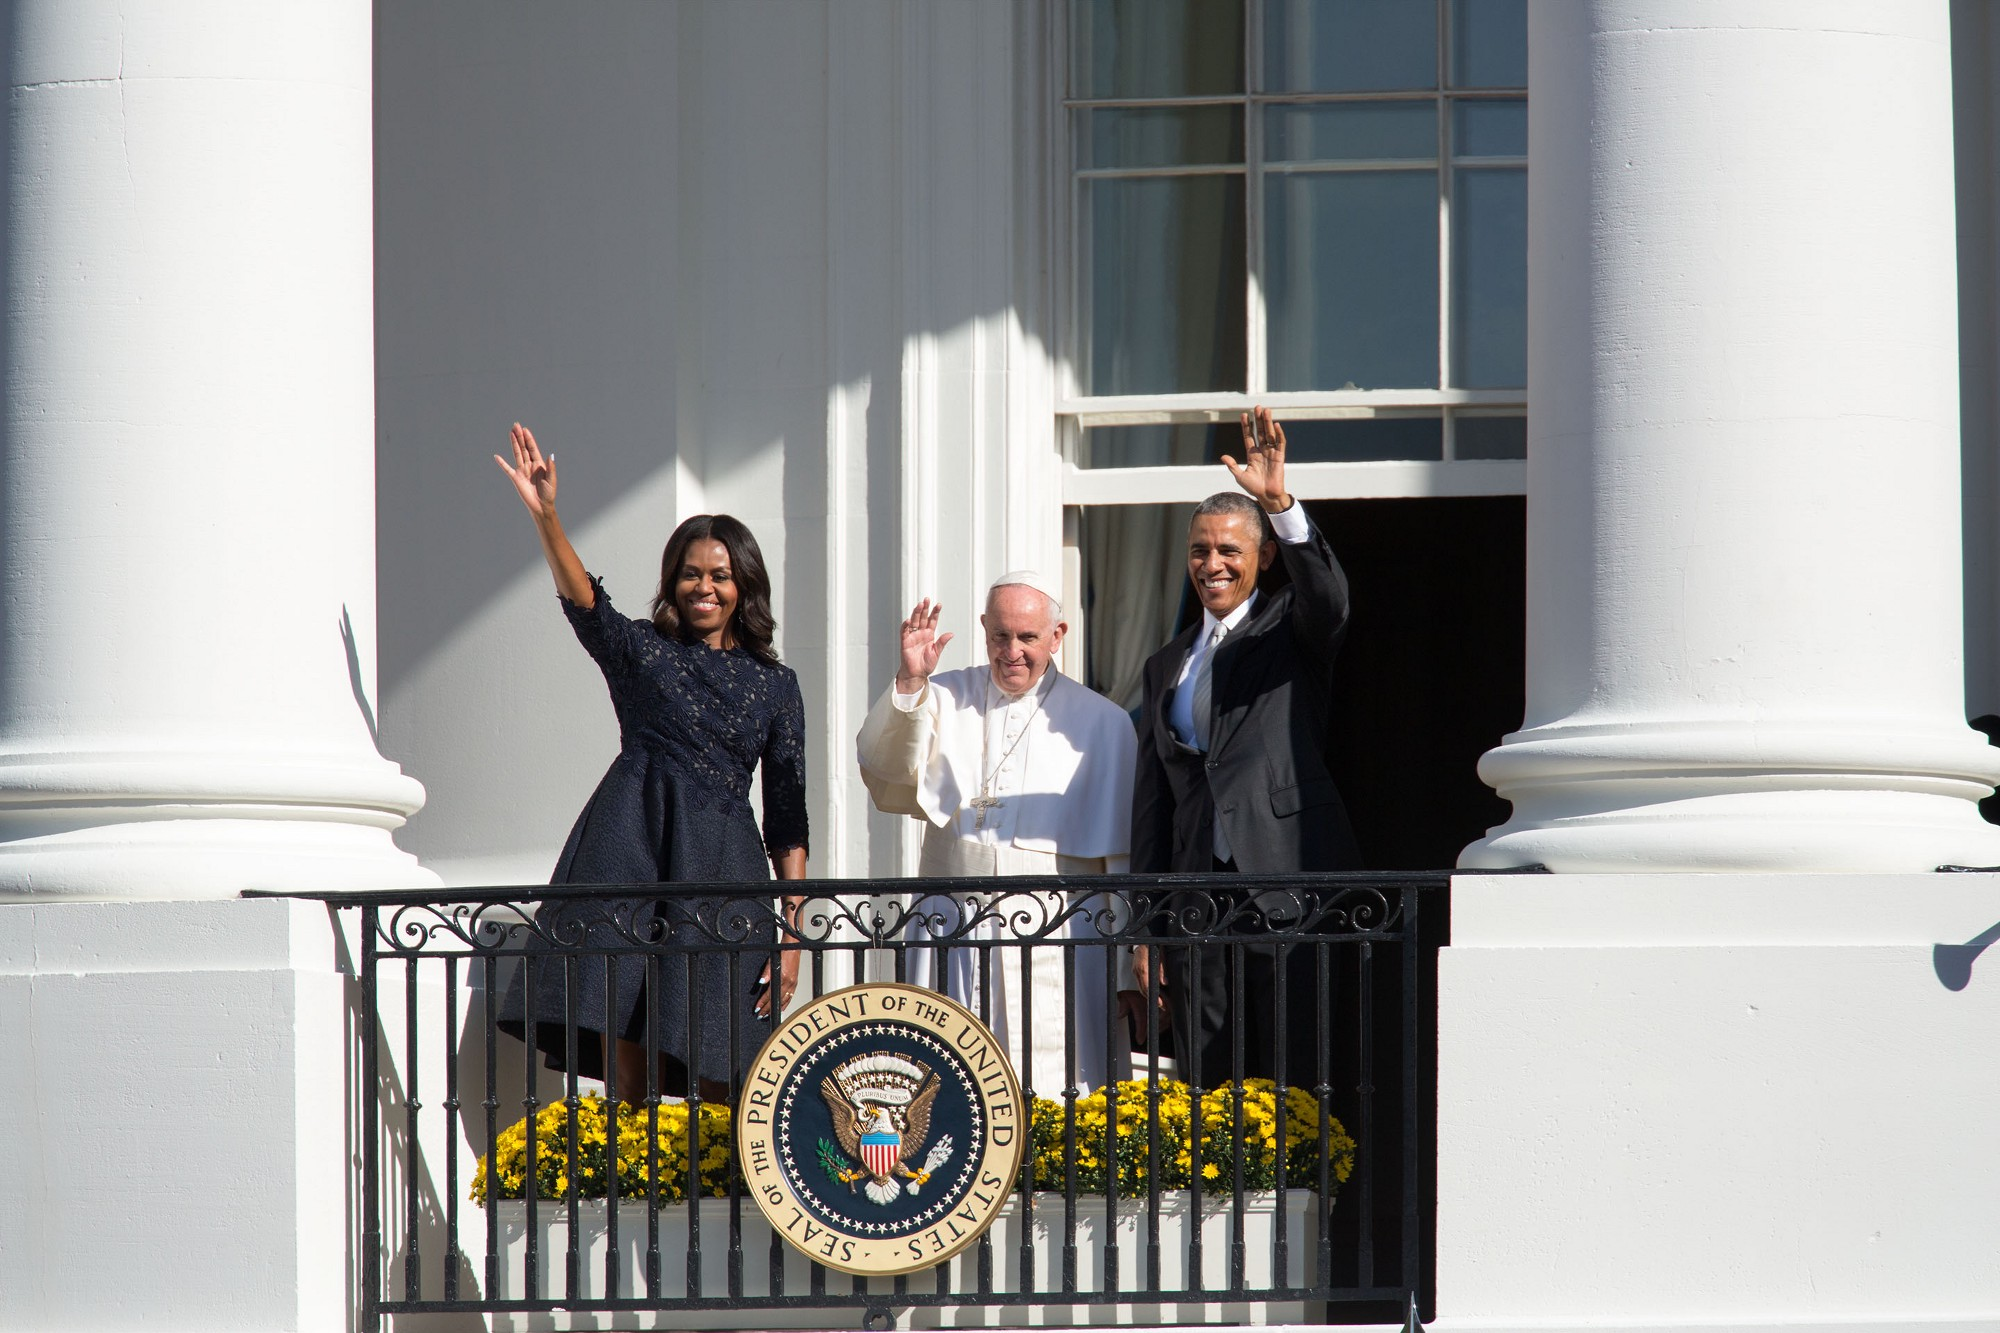 The Pope waves from the Blue Room Balcony with the President and First Lady. (Official White House Photo by Amanda Lucidon)